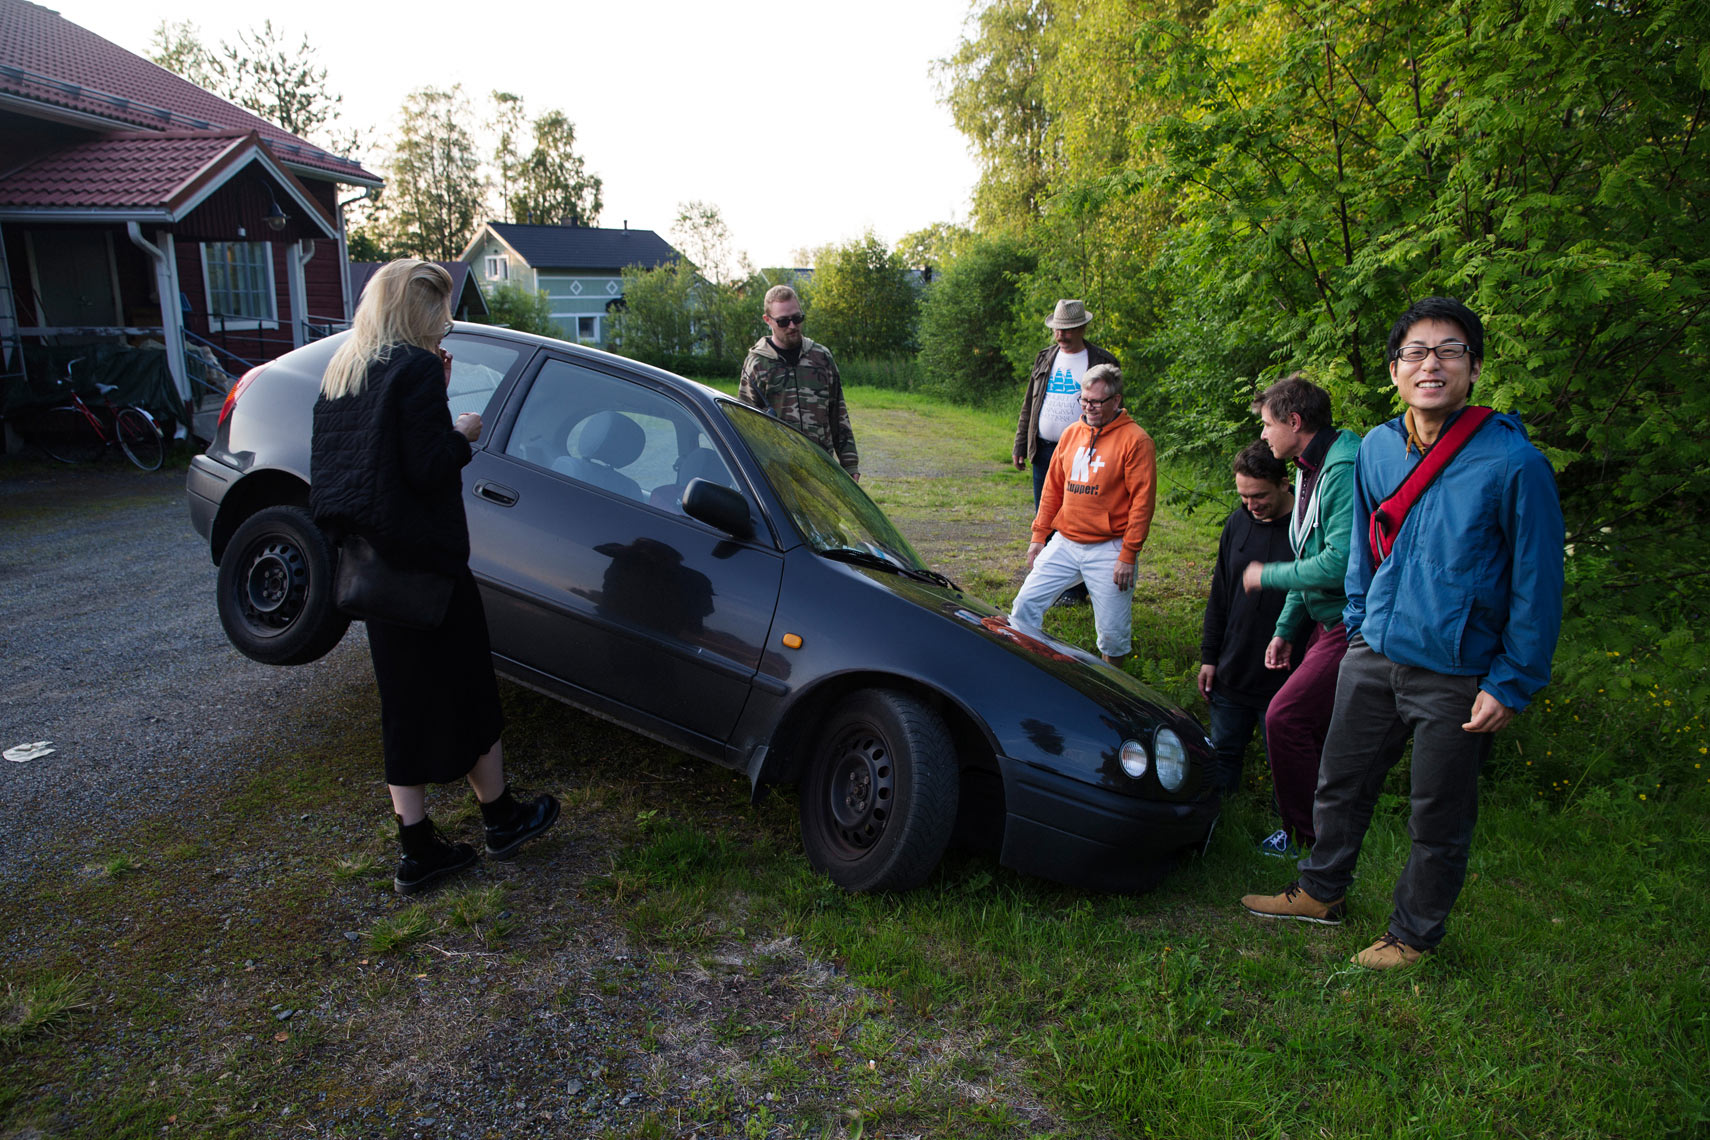 Aki-Pekka Sinikoski: Endless Summer – Outdoor Exhibition in Ii // KulttuuriKauppila Art Centre in Ii